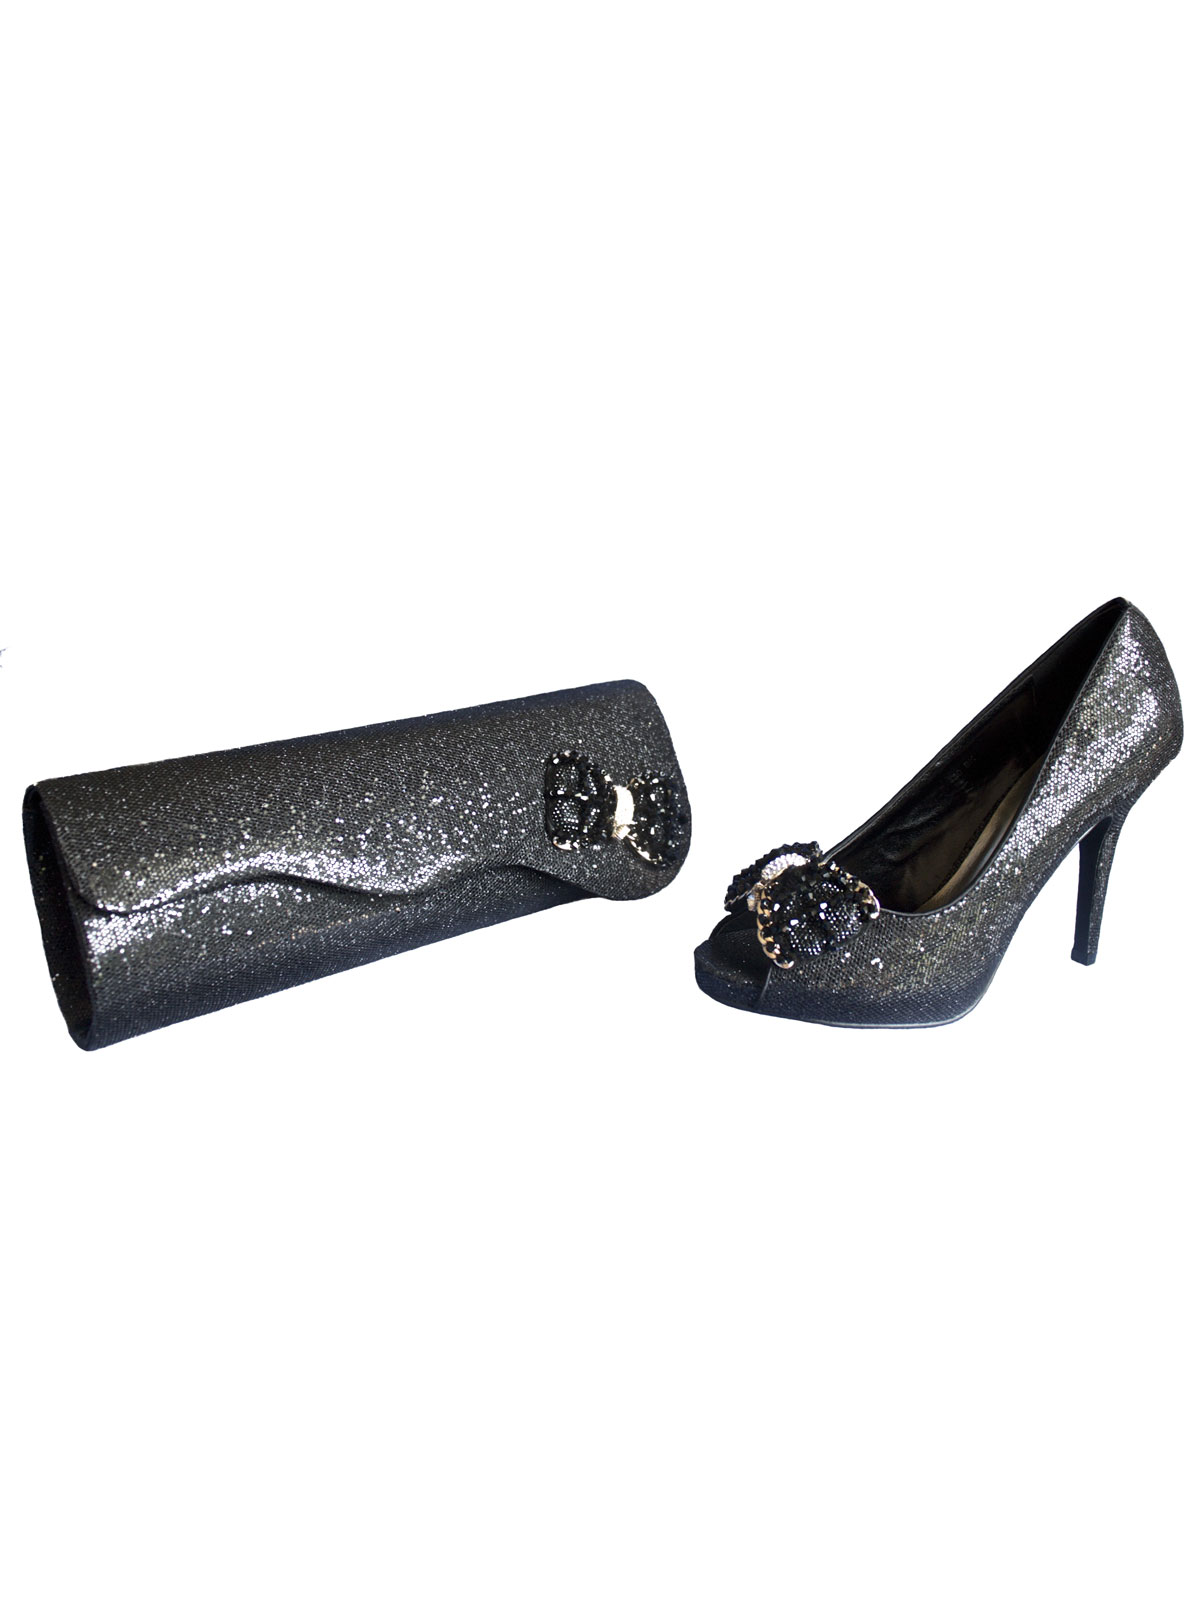 Lunar Black Glitzy Matching Shoes and Bag